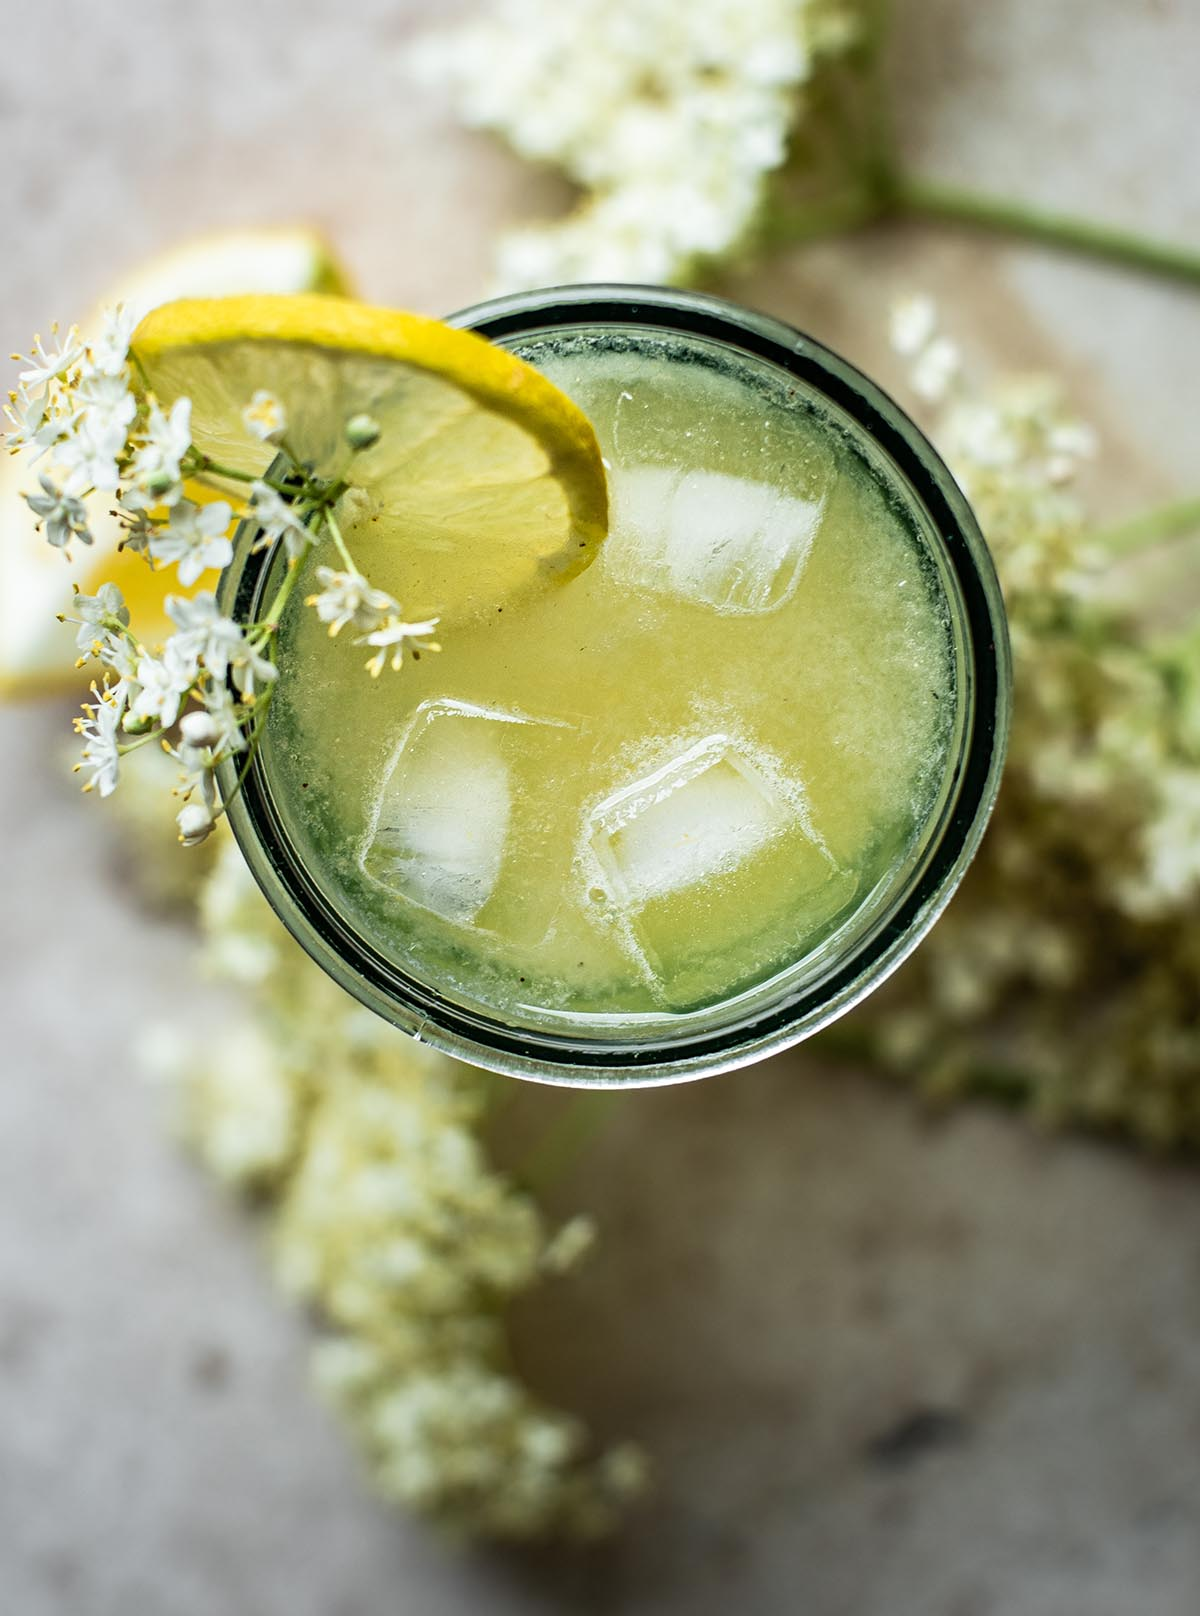 Top down view of elderflower lemonade in a glass with ice.